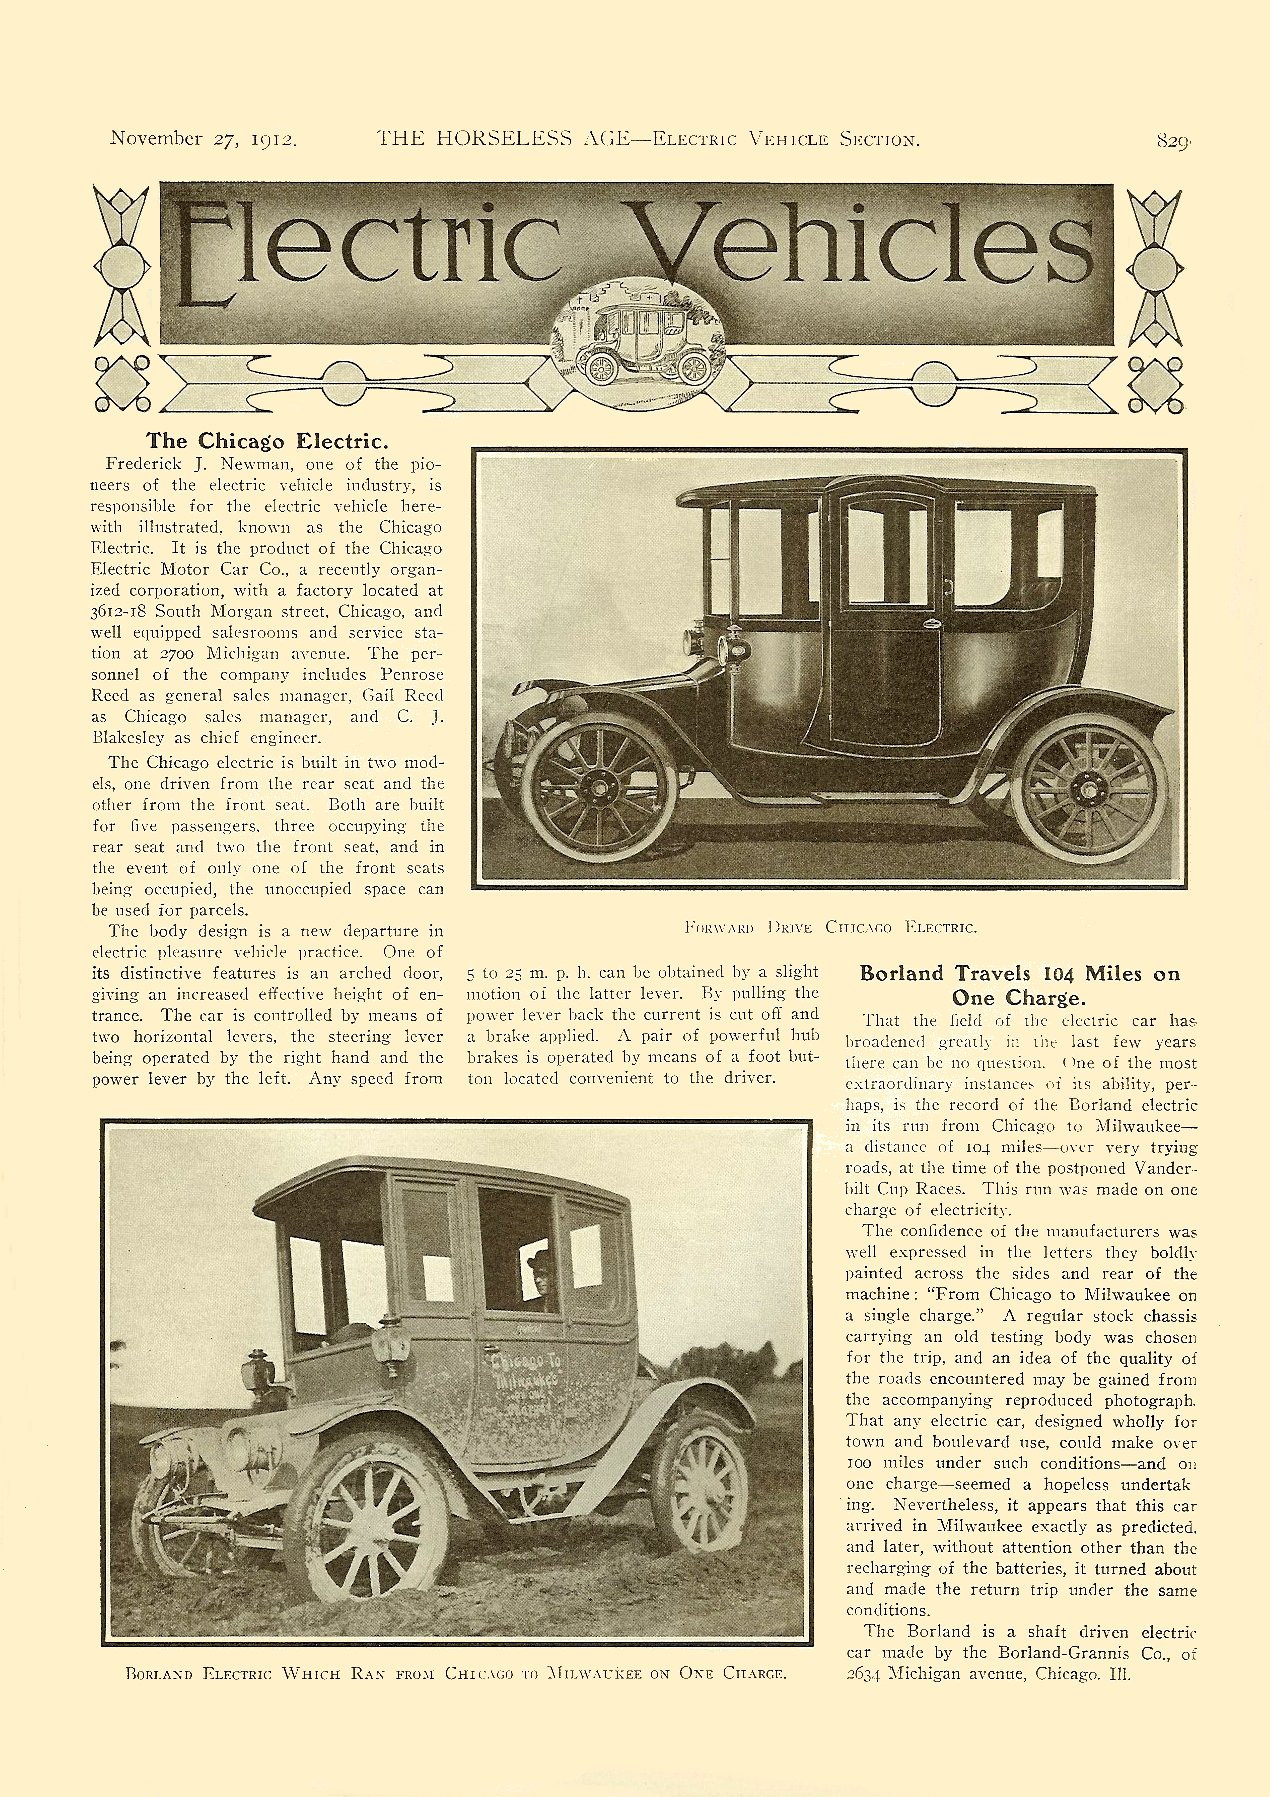 1913 11 27 Electric Vehicles The Chicago Electric THE HORSELESS AGE Vol. 30, No. 22 November 27, 1912 9″x12″ page 829